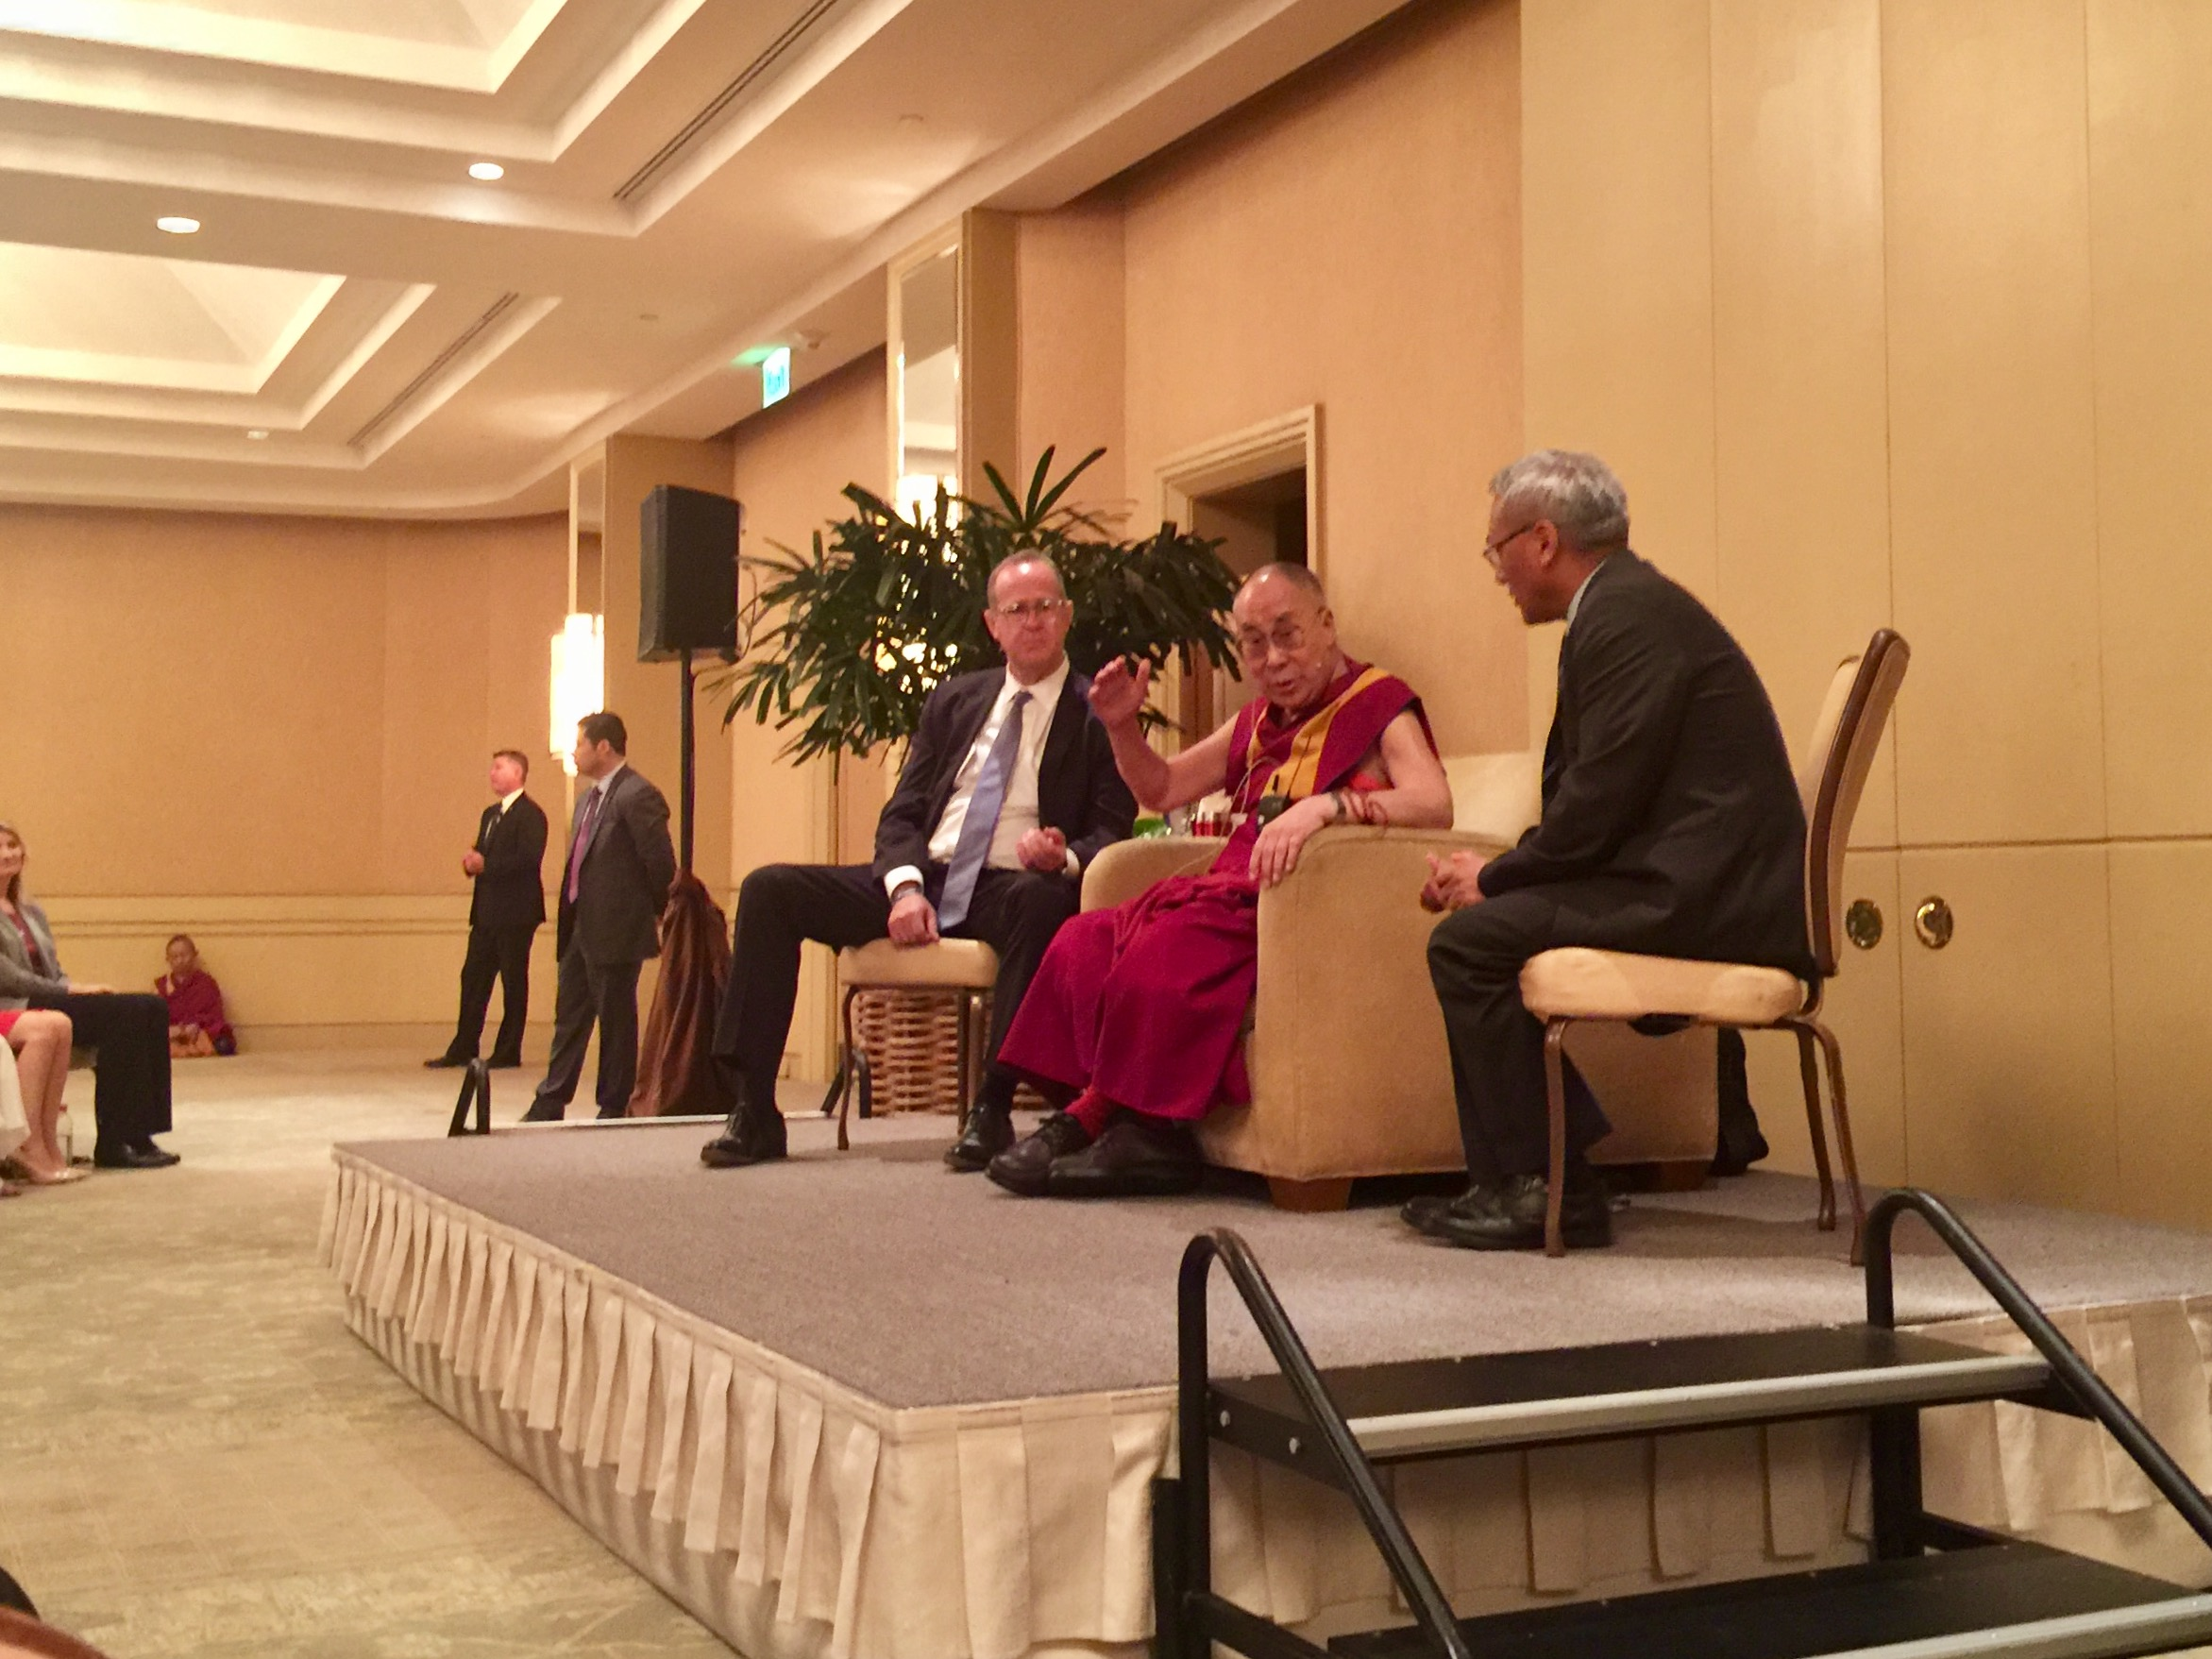 During an OC visit, Dalai Lama shares reflections on kindness with Anaheim educators